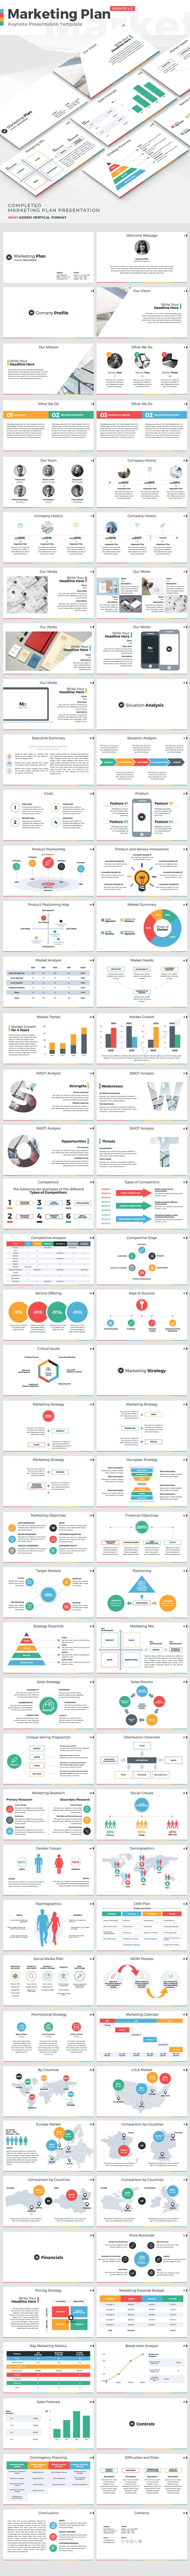 marketing plan keynote presentation template by jetz graphicriver